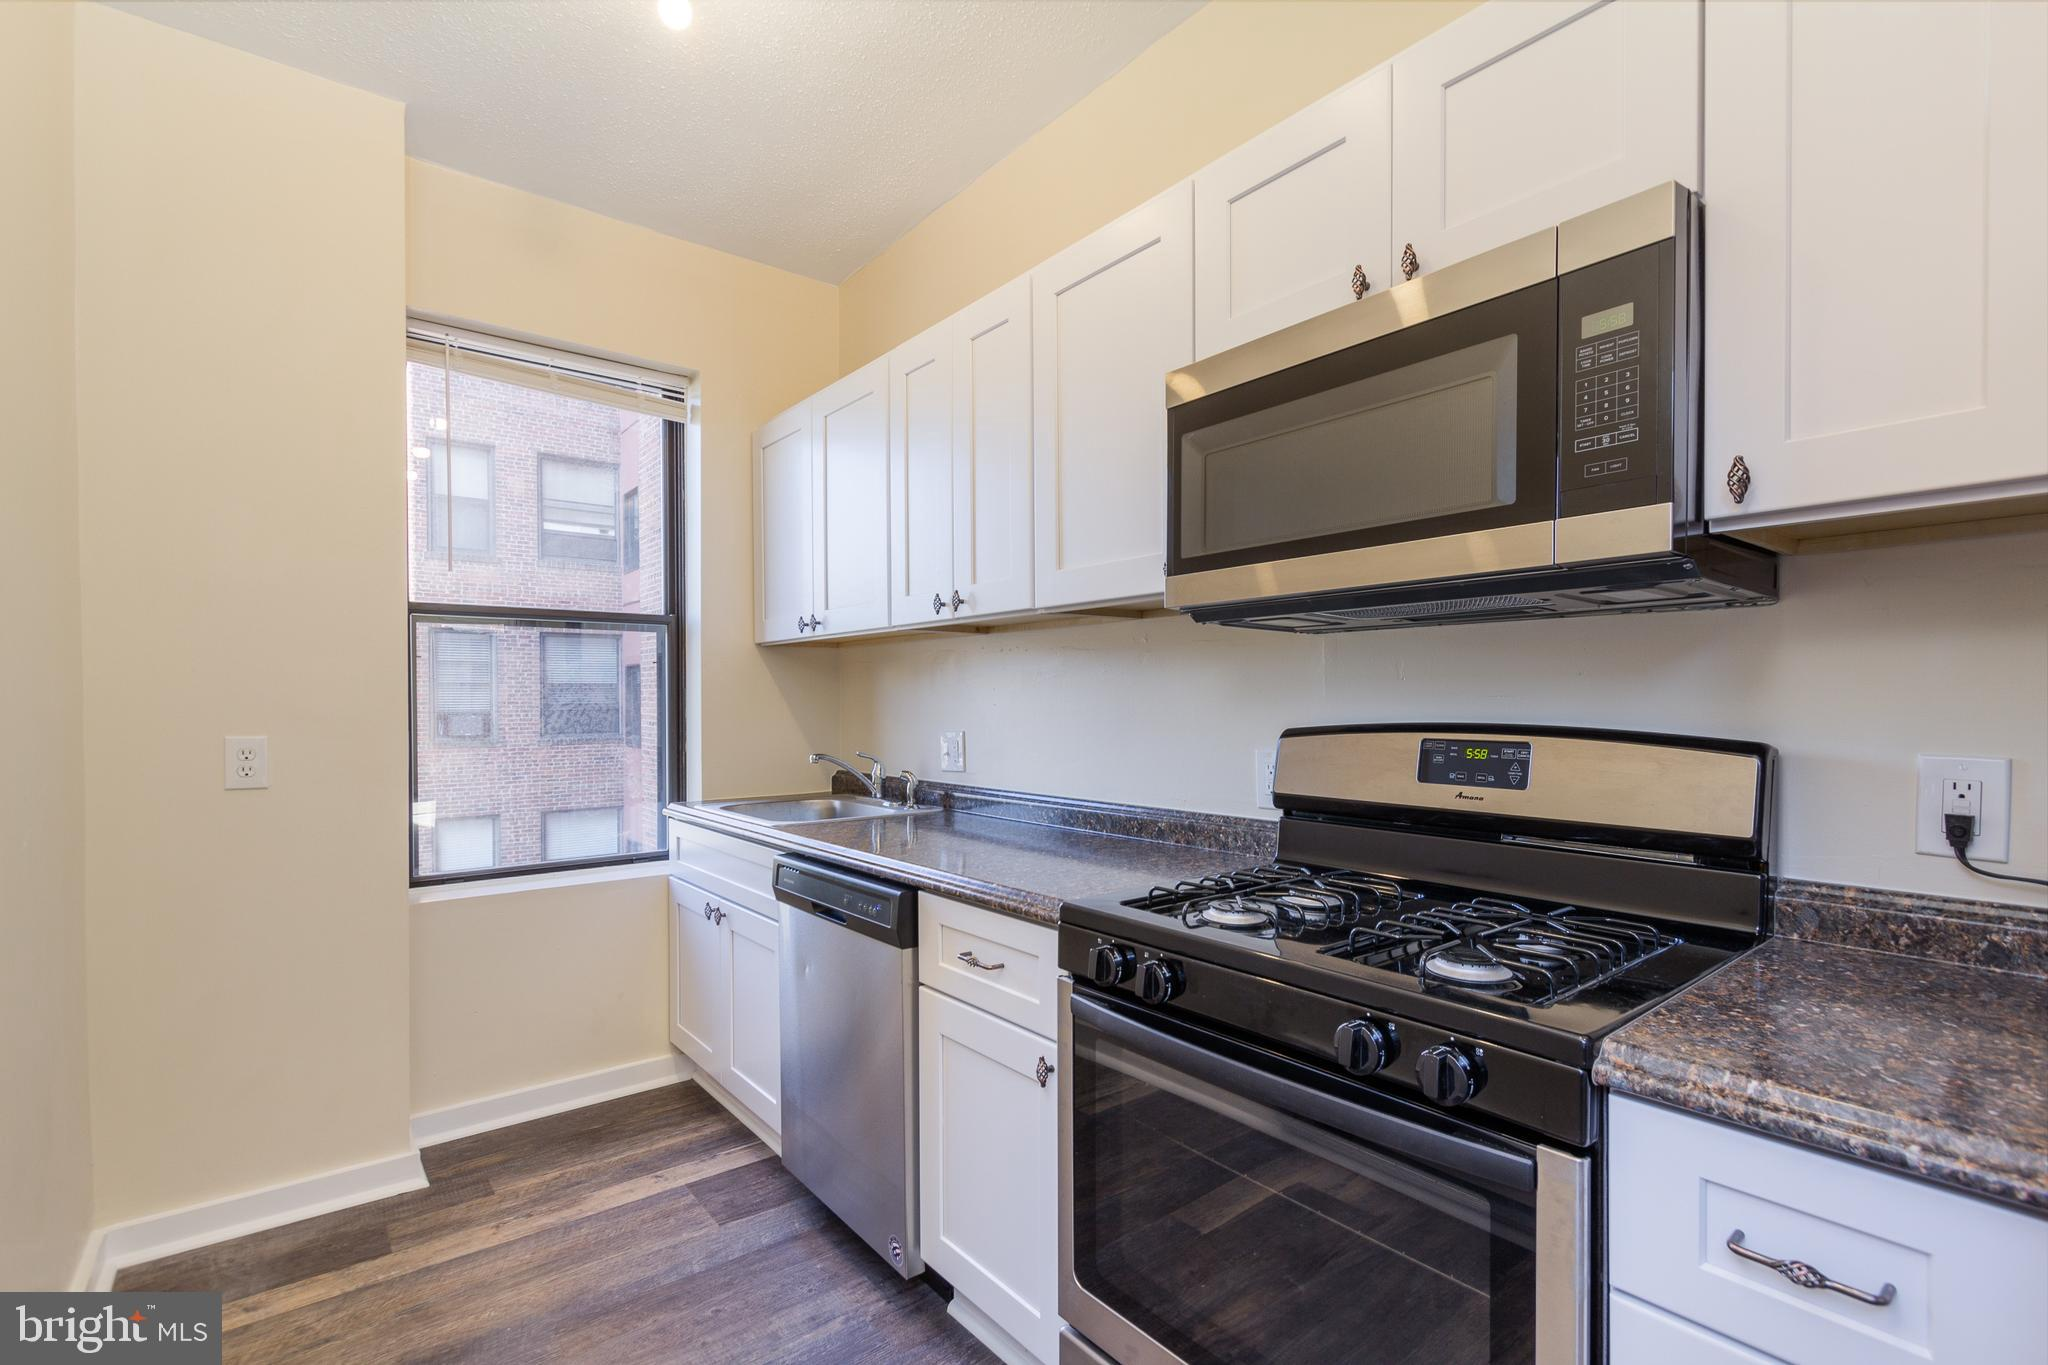 BEAUTIFULLY UPDATED CONDO! Located in Historic Mount Vernon within walking distance to Penn Station, Shops, Restaurants and much more.   Well designed studio unit to maximize space with an updated kitchen and bath.  Enjoy your time on the roof top deck with 360 degree views of the city. Off street parking available in the garage for a separate fee when available. A full service building with a 24-hr front desk. Check out this unit today!